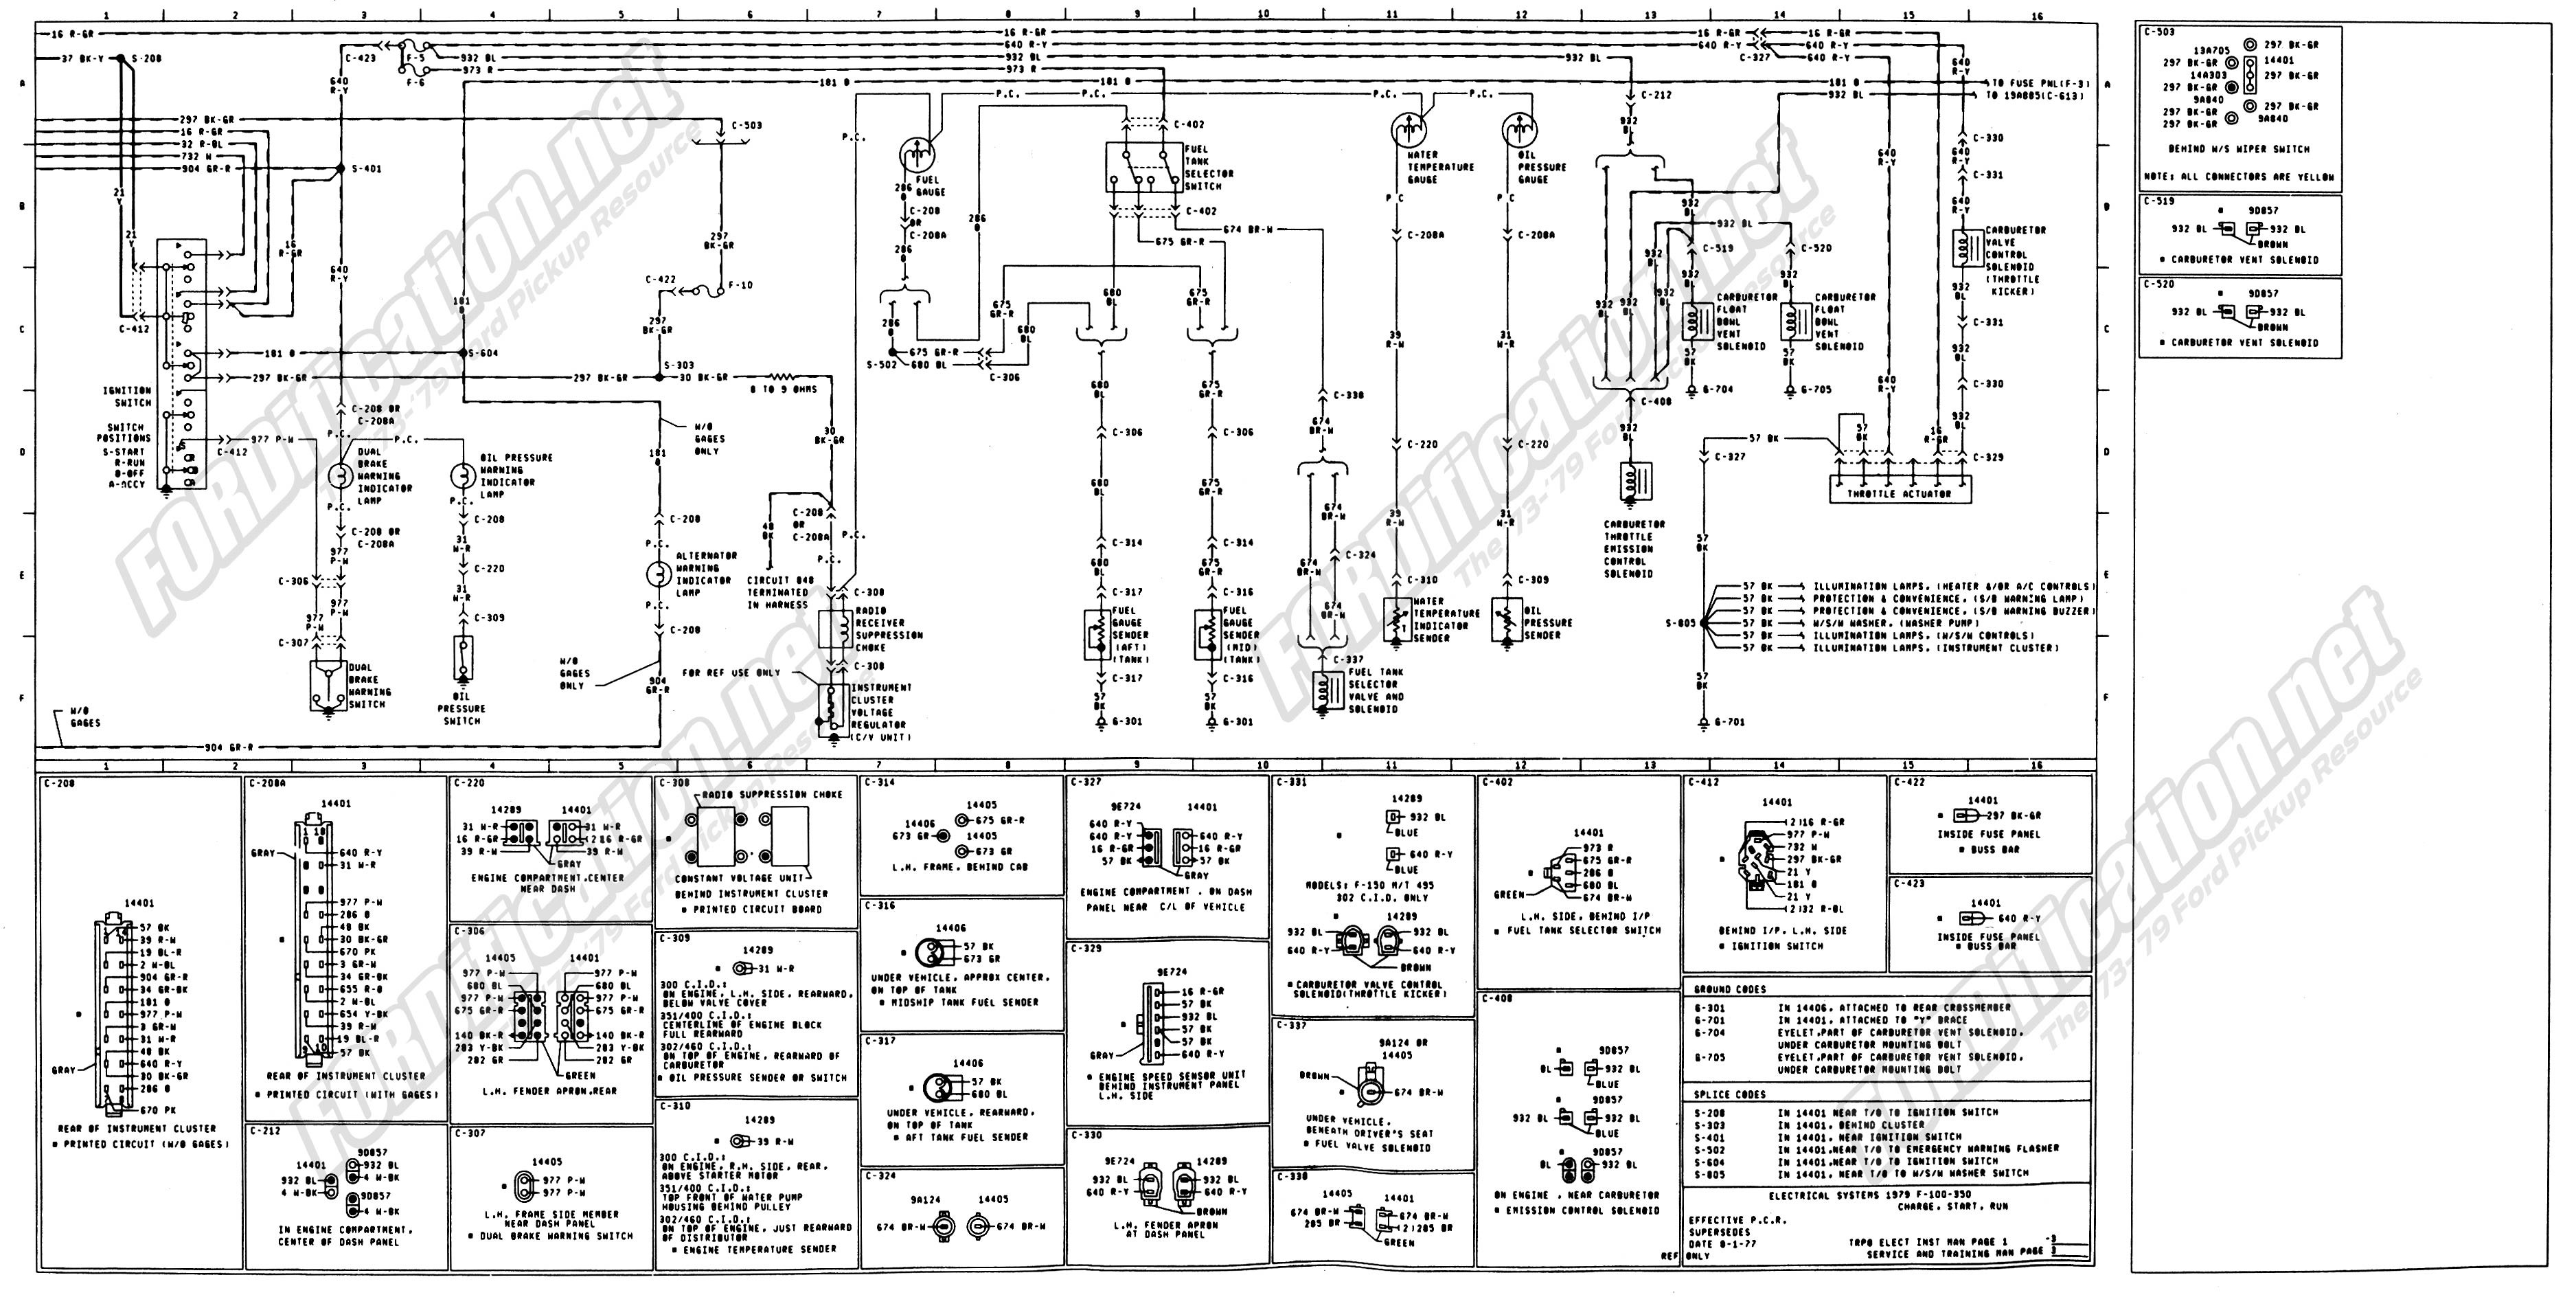 2000 ford F150 Ignition Switch Wiring Diagram ford Transfer Case Wiring Diagram Wiring Diagram Symbols Of 2000 ford F150 Ignition Switch Wiring Diagram